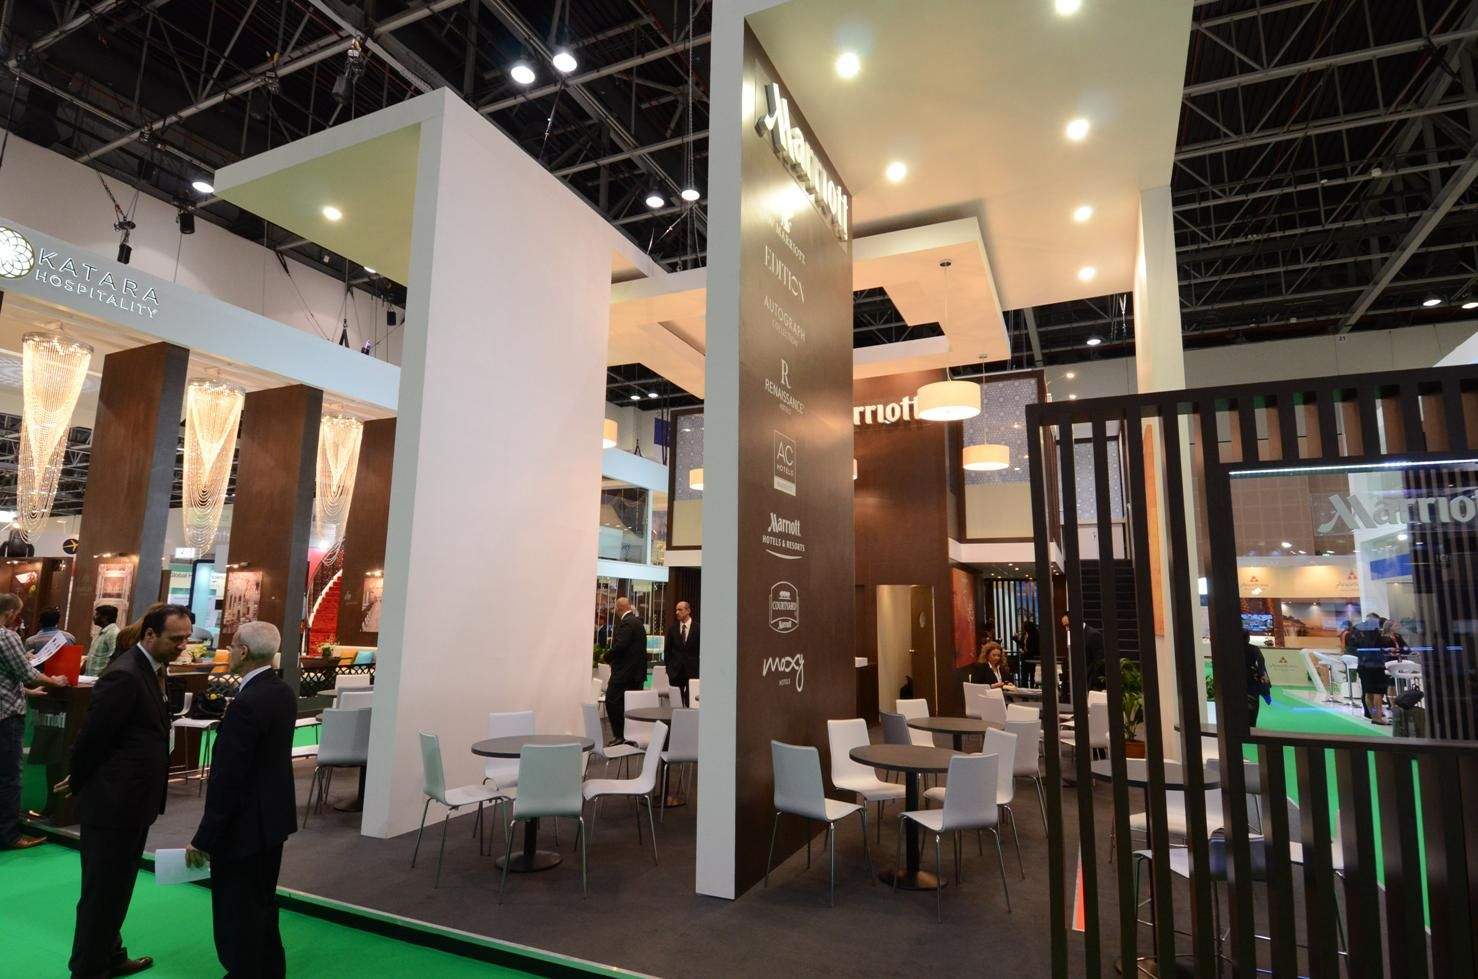 Design installation of trade show booth at ATM Dubai by Elevations